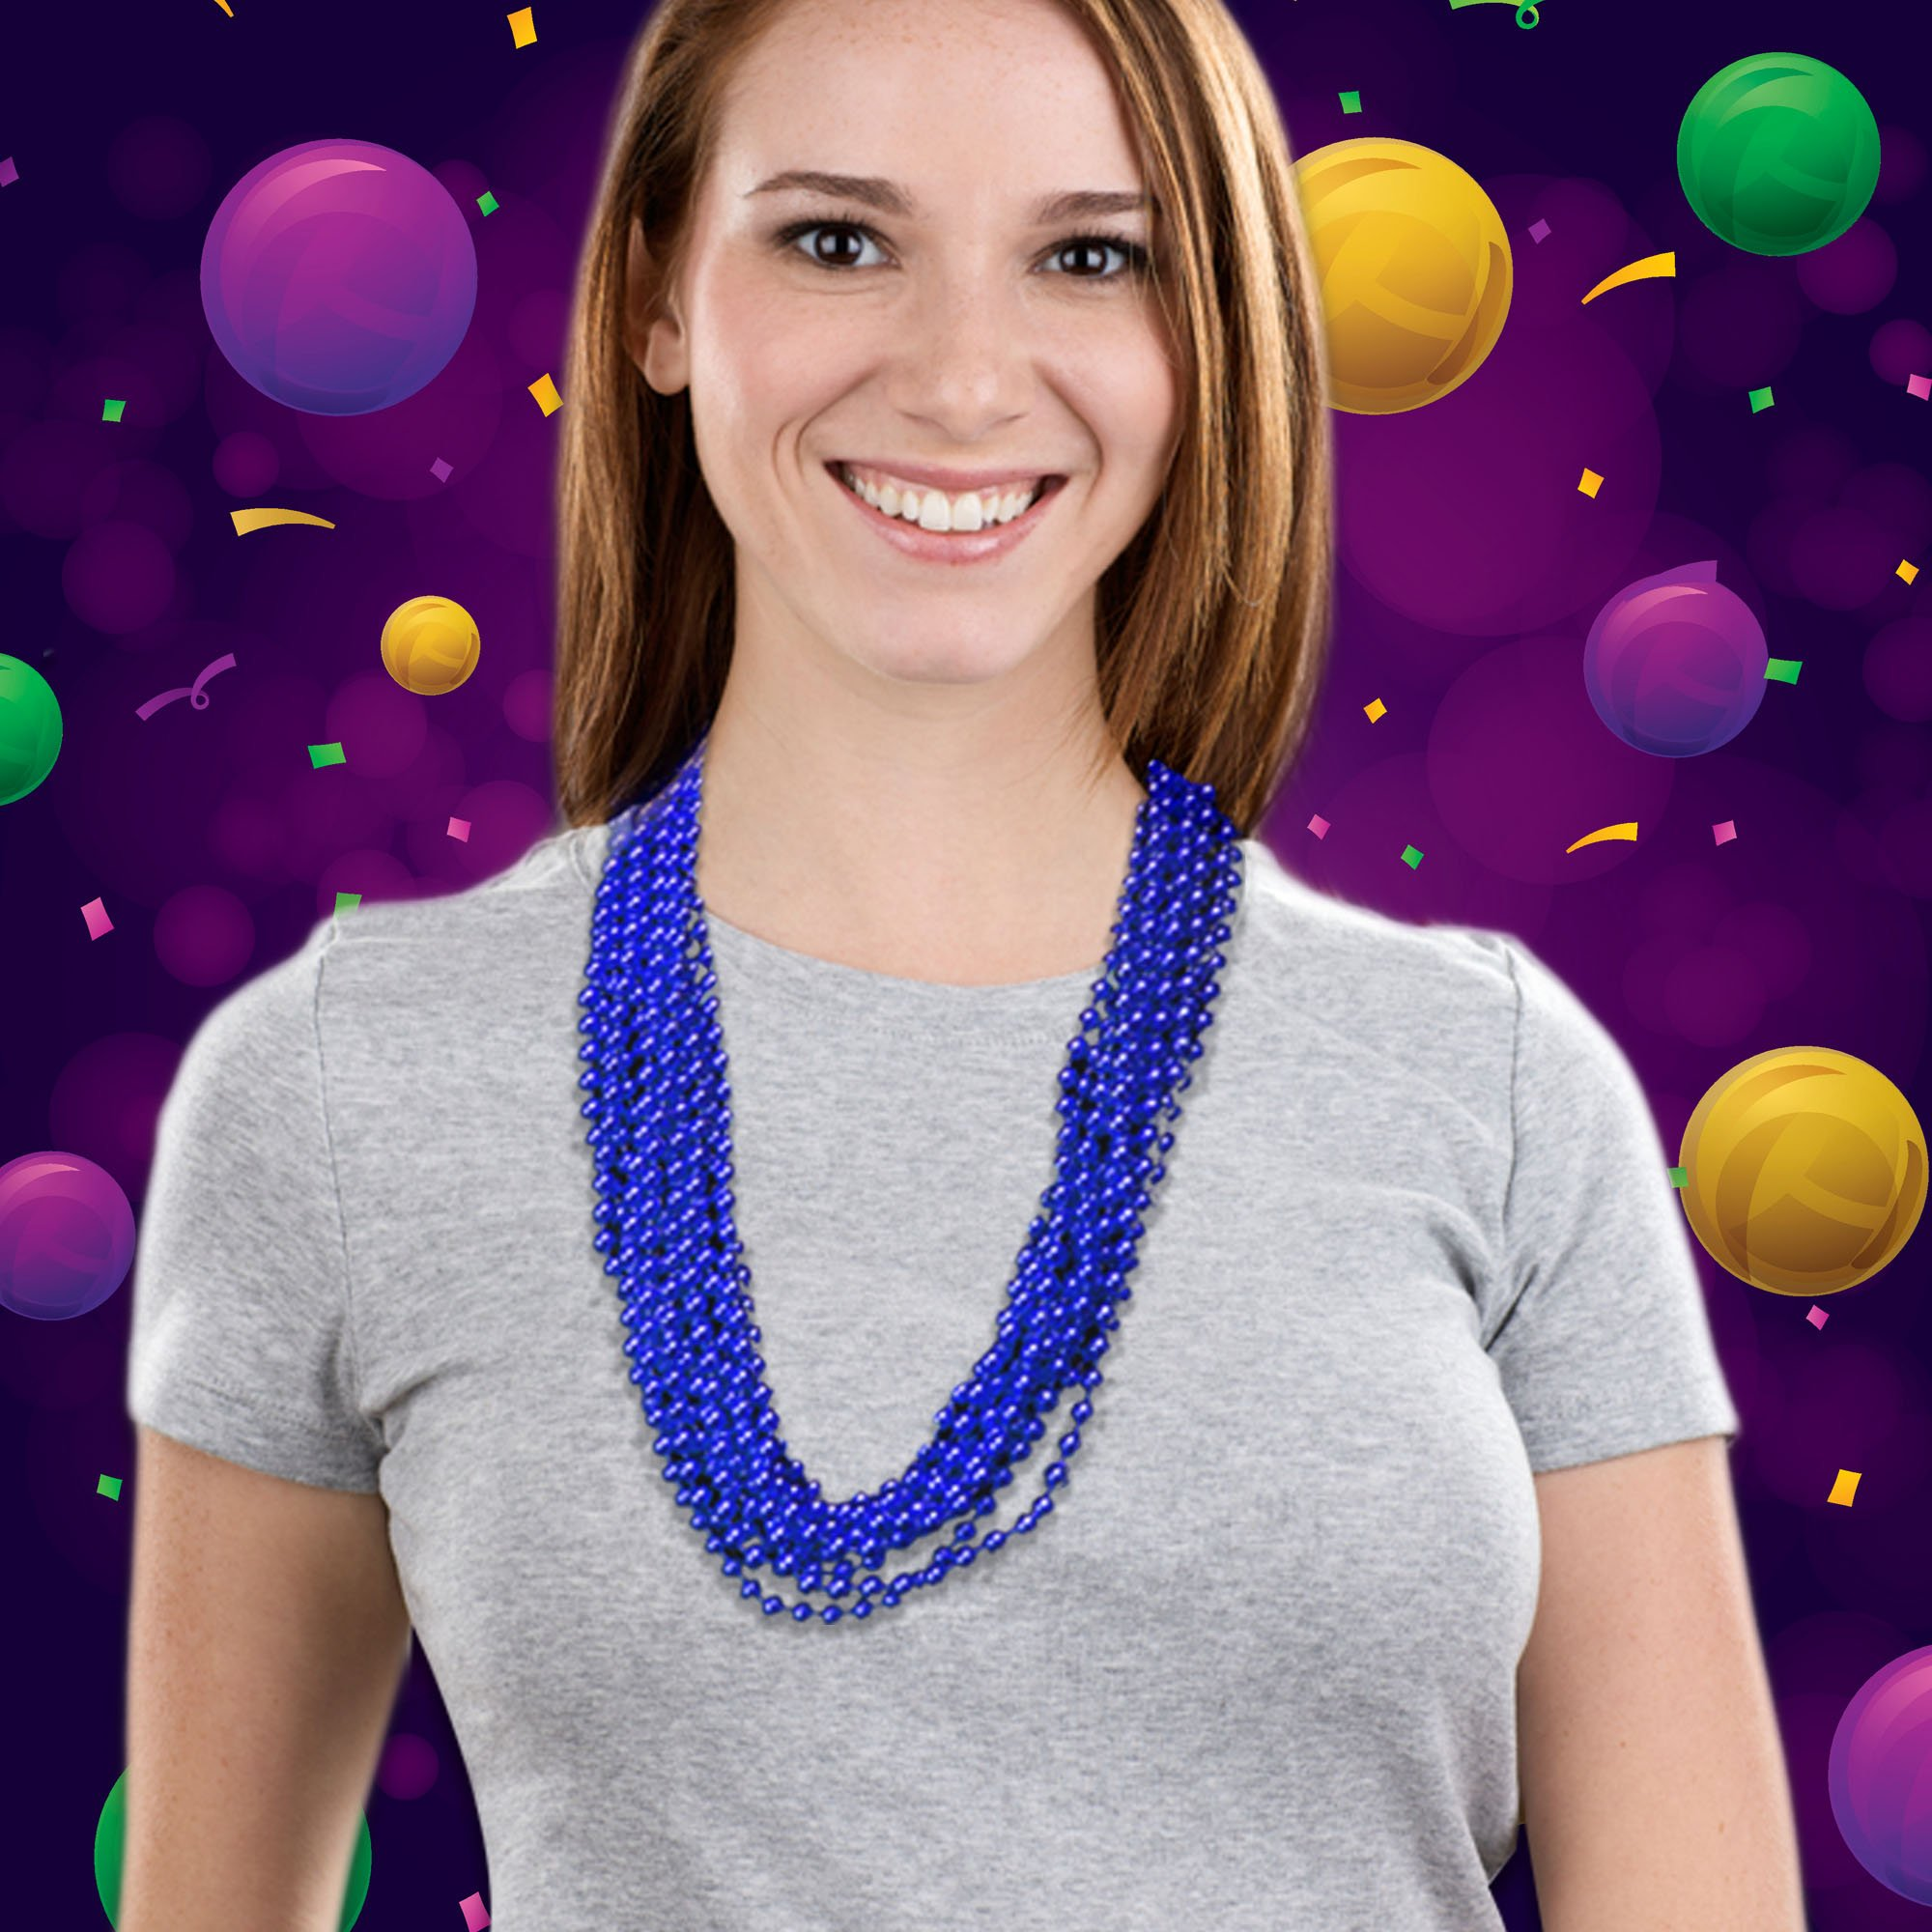 Blue Mardi Gras Beads 33'' Inches - 12 Pack